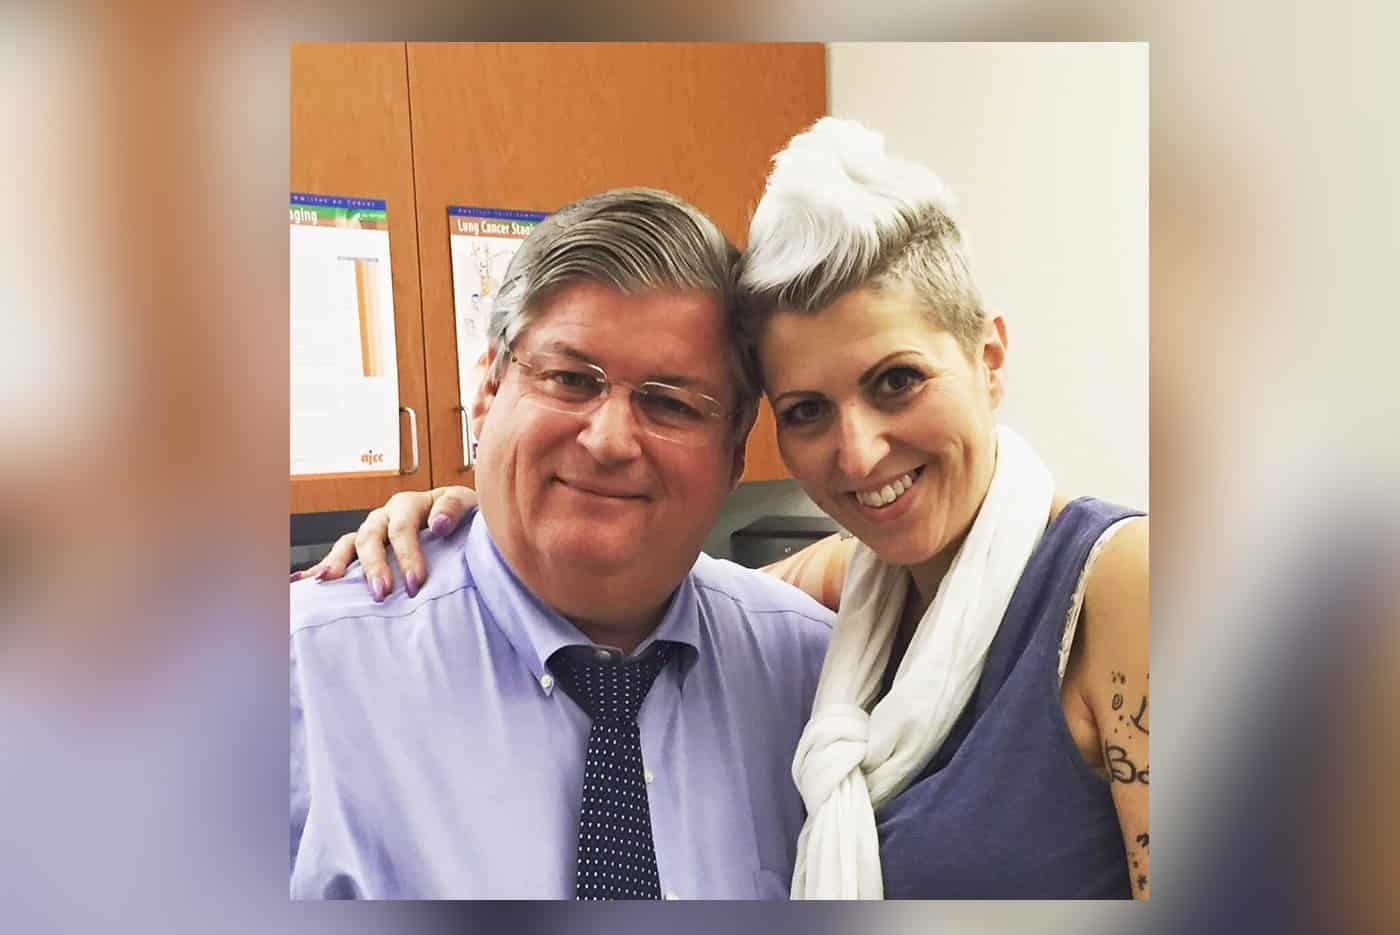 The late Dr. David Sugarbaker and mesothelioma survivor Heather Von St. James